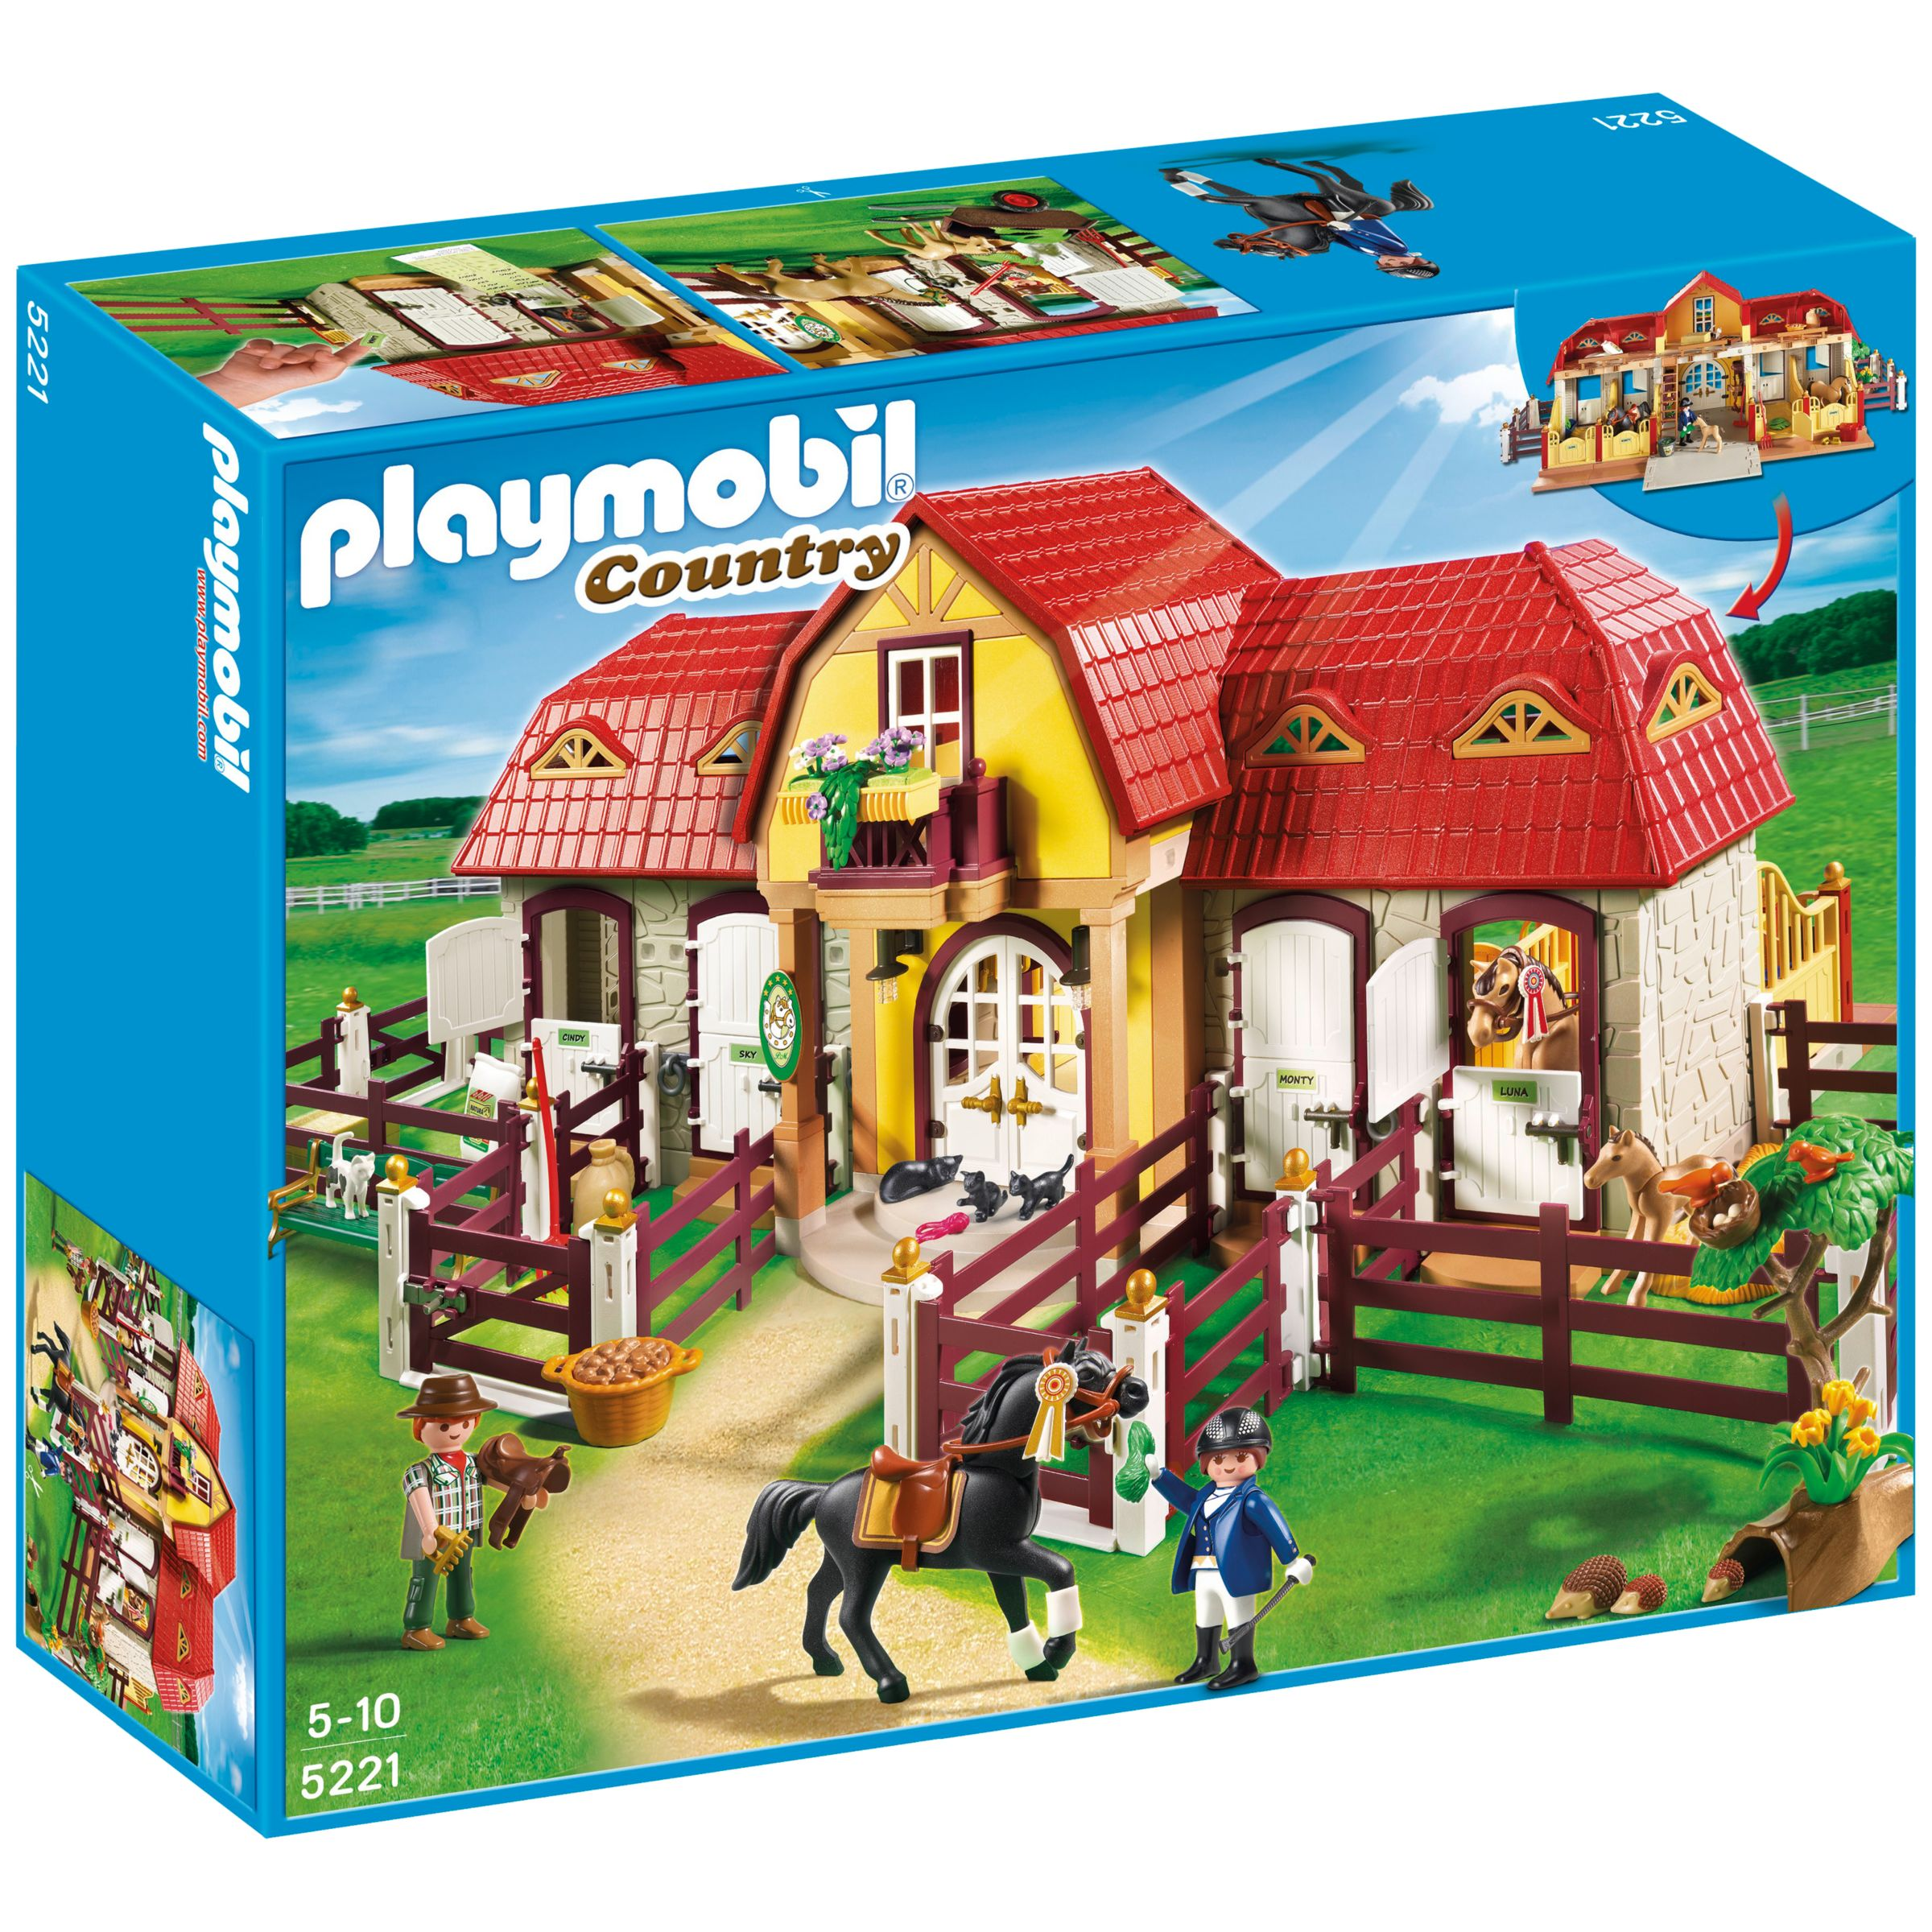 Click here for Playmobil Country Large Pony Farm Set